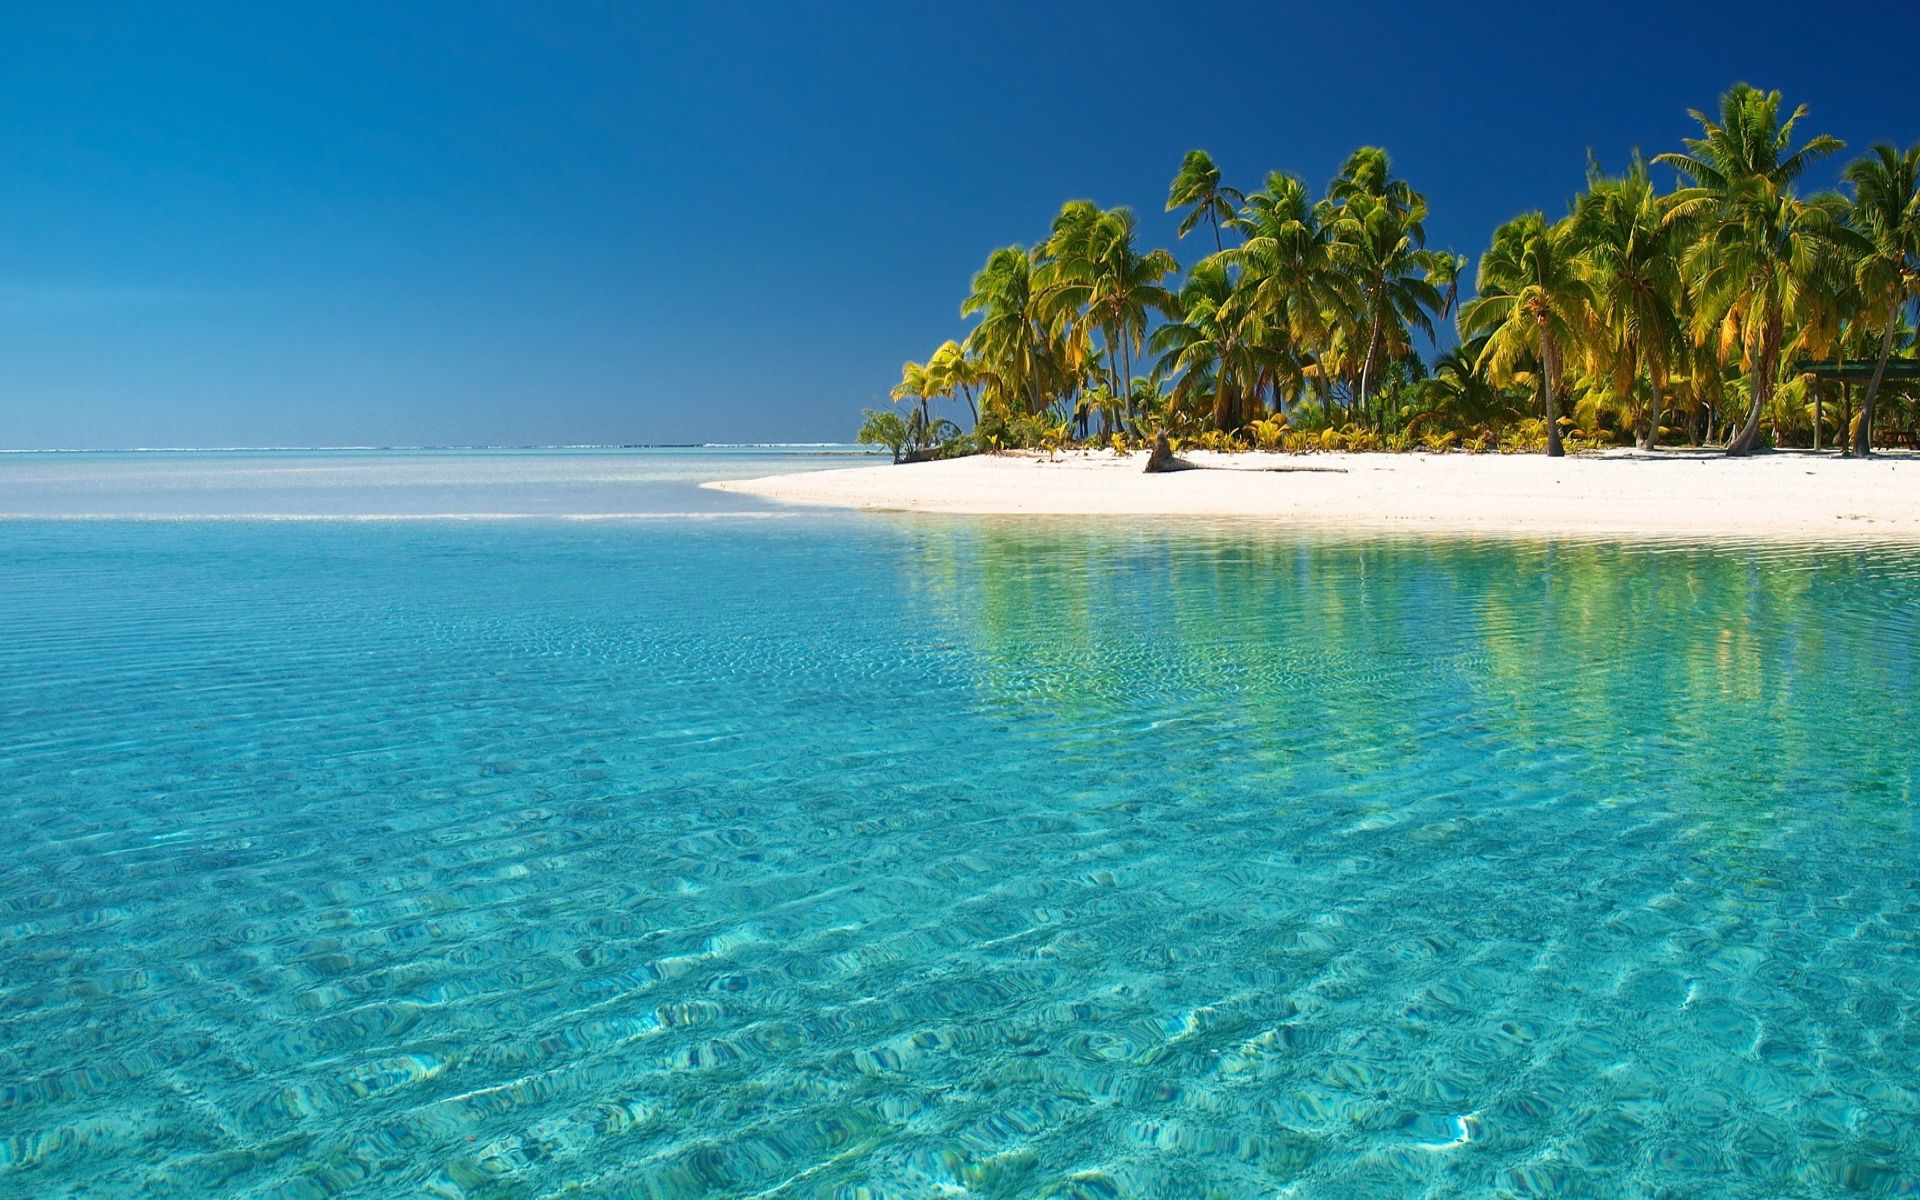 Beaches Palm Water Nature Beaches Clear Fish Sky Underwater Trees